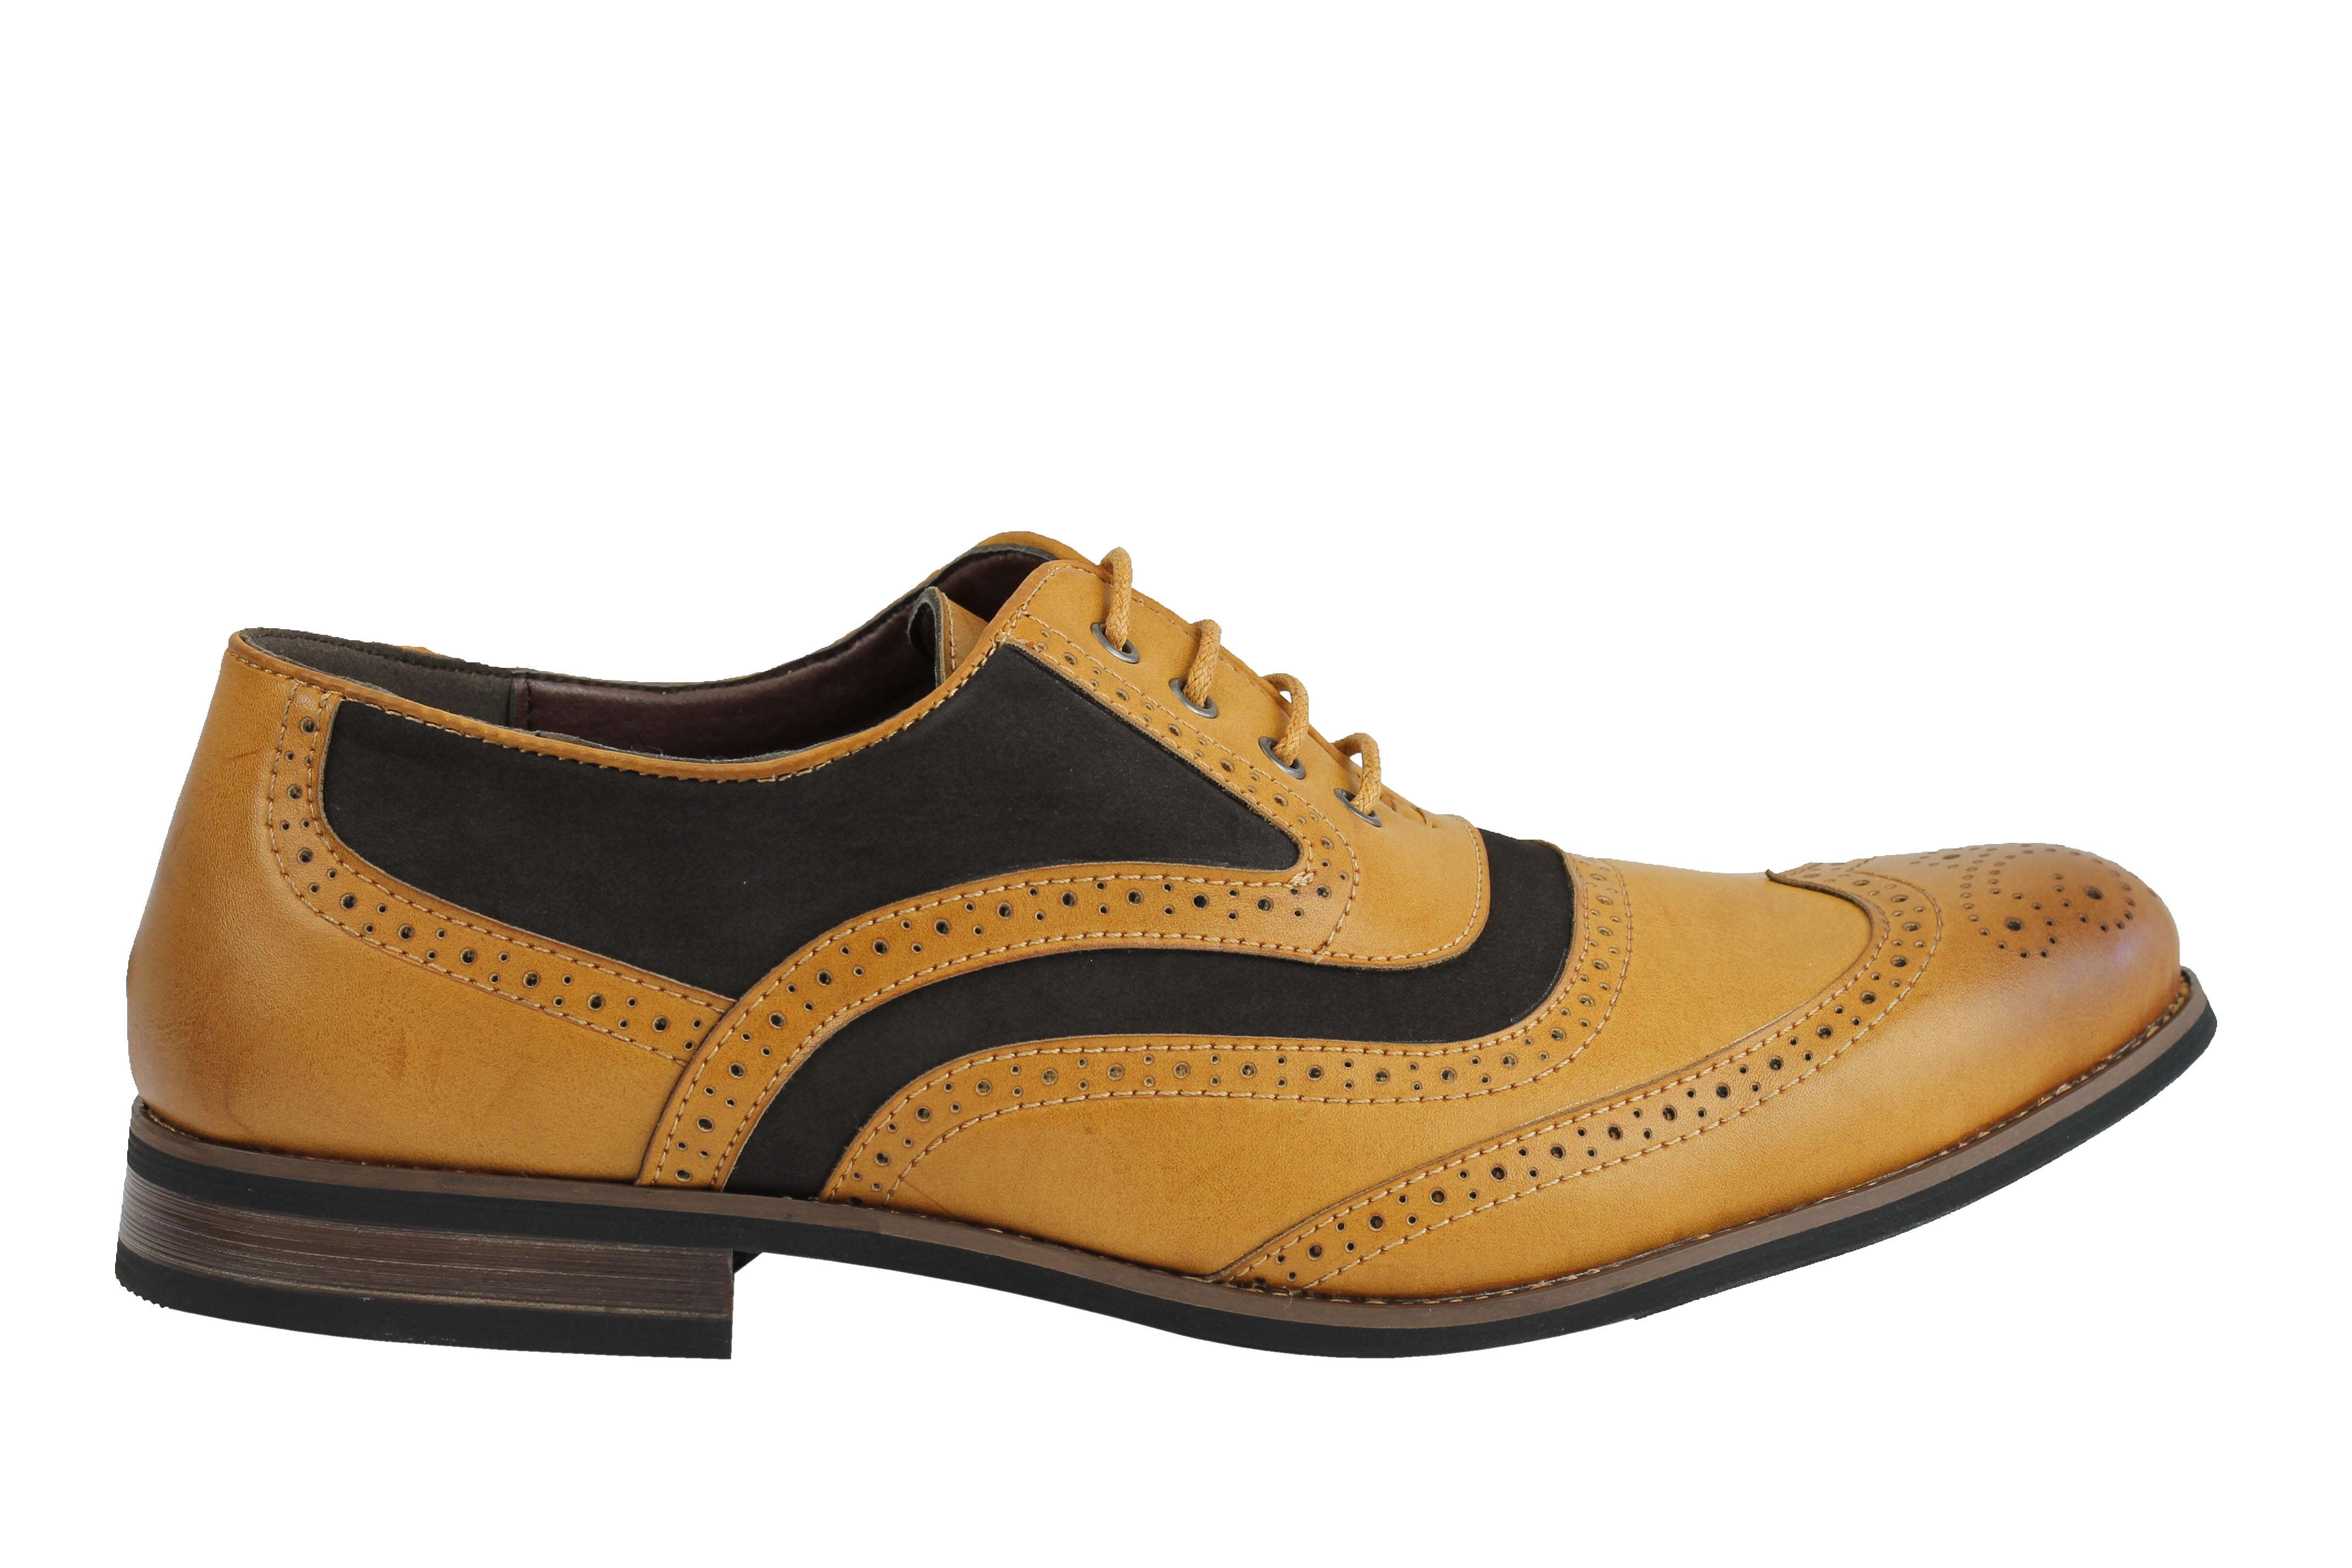 Mens-Retro-Vintage-Wing-Tip-Leather-Brogue-Smart-Casual-Office-Shoes-UK-Sizes thumbnail 10